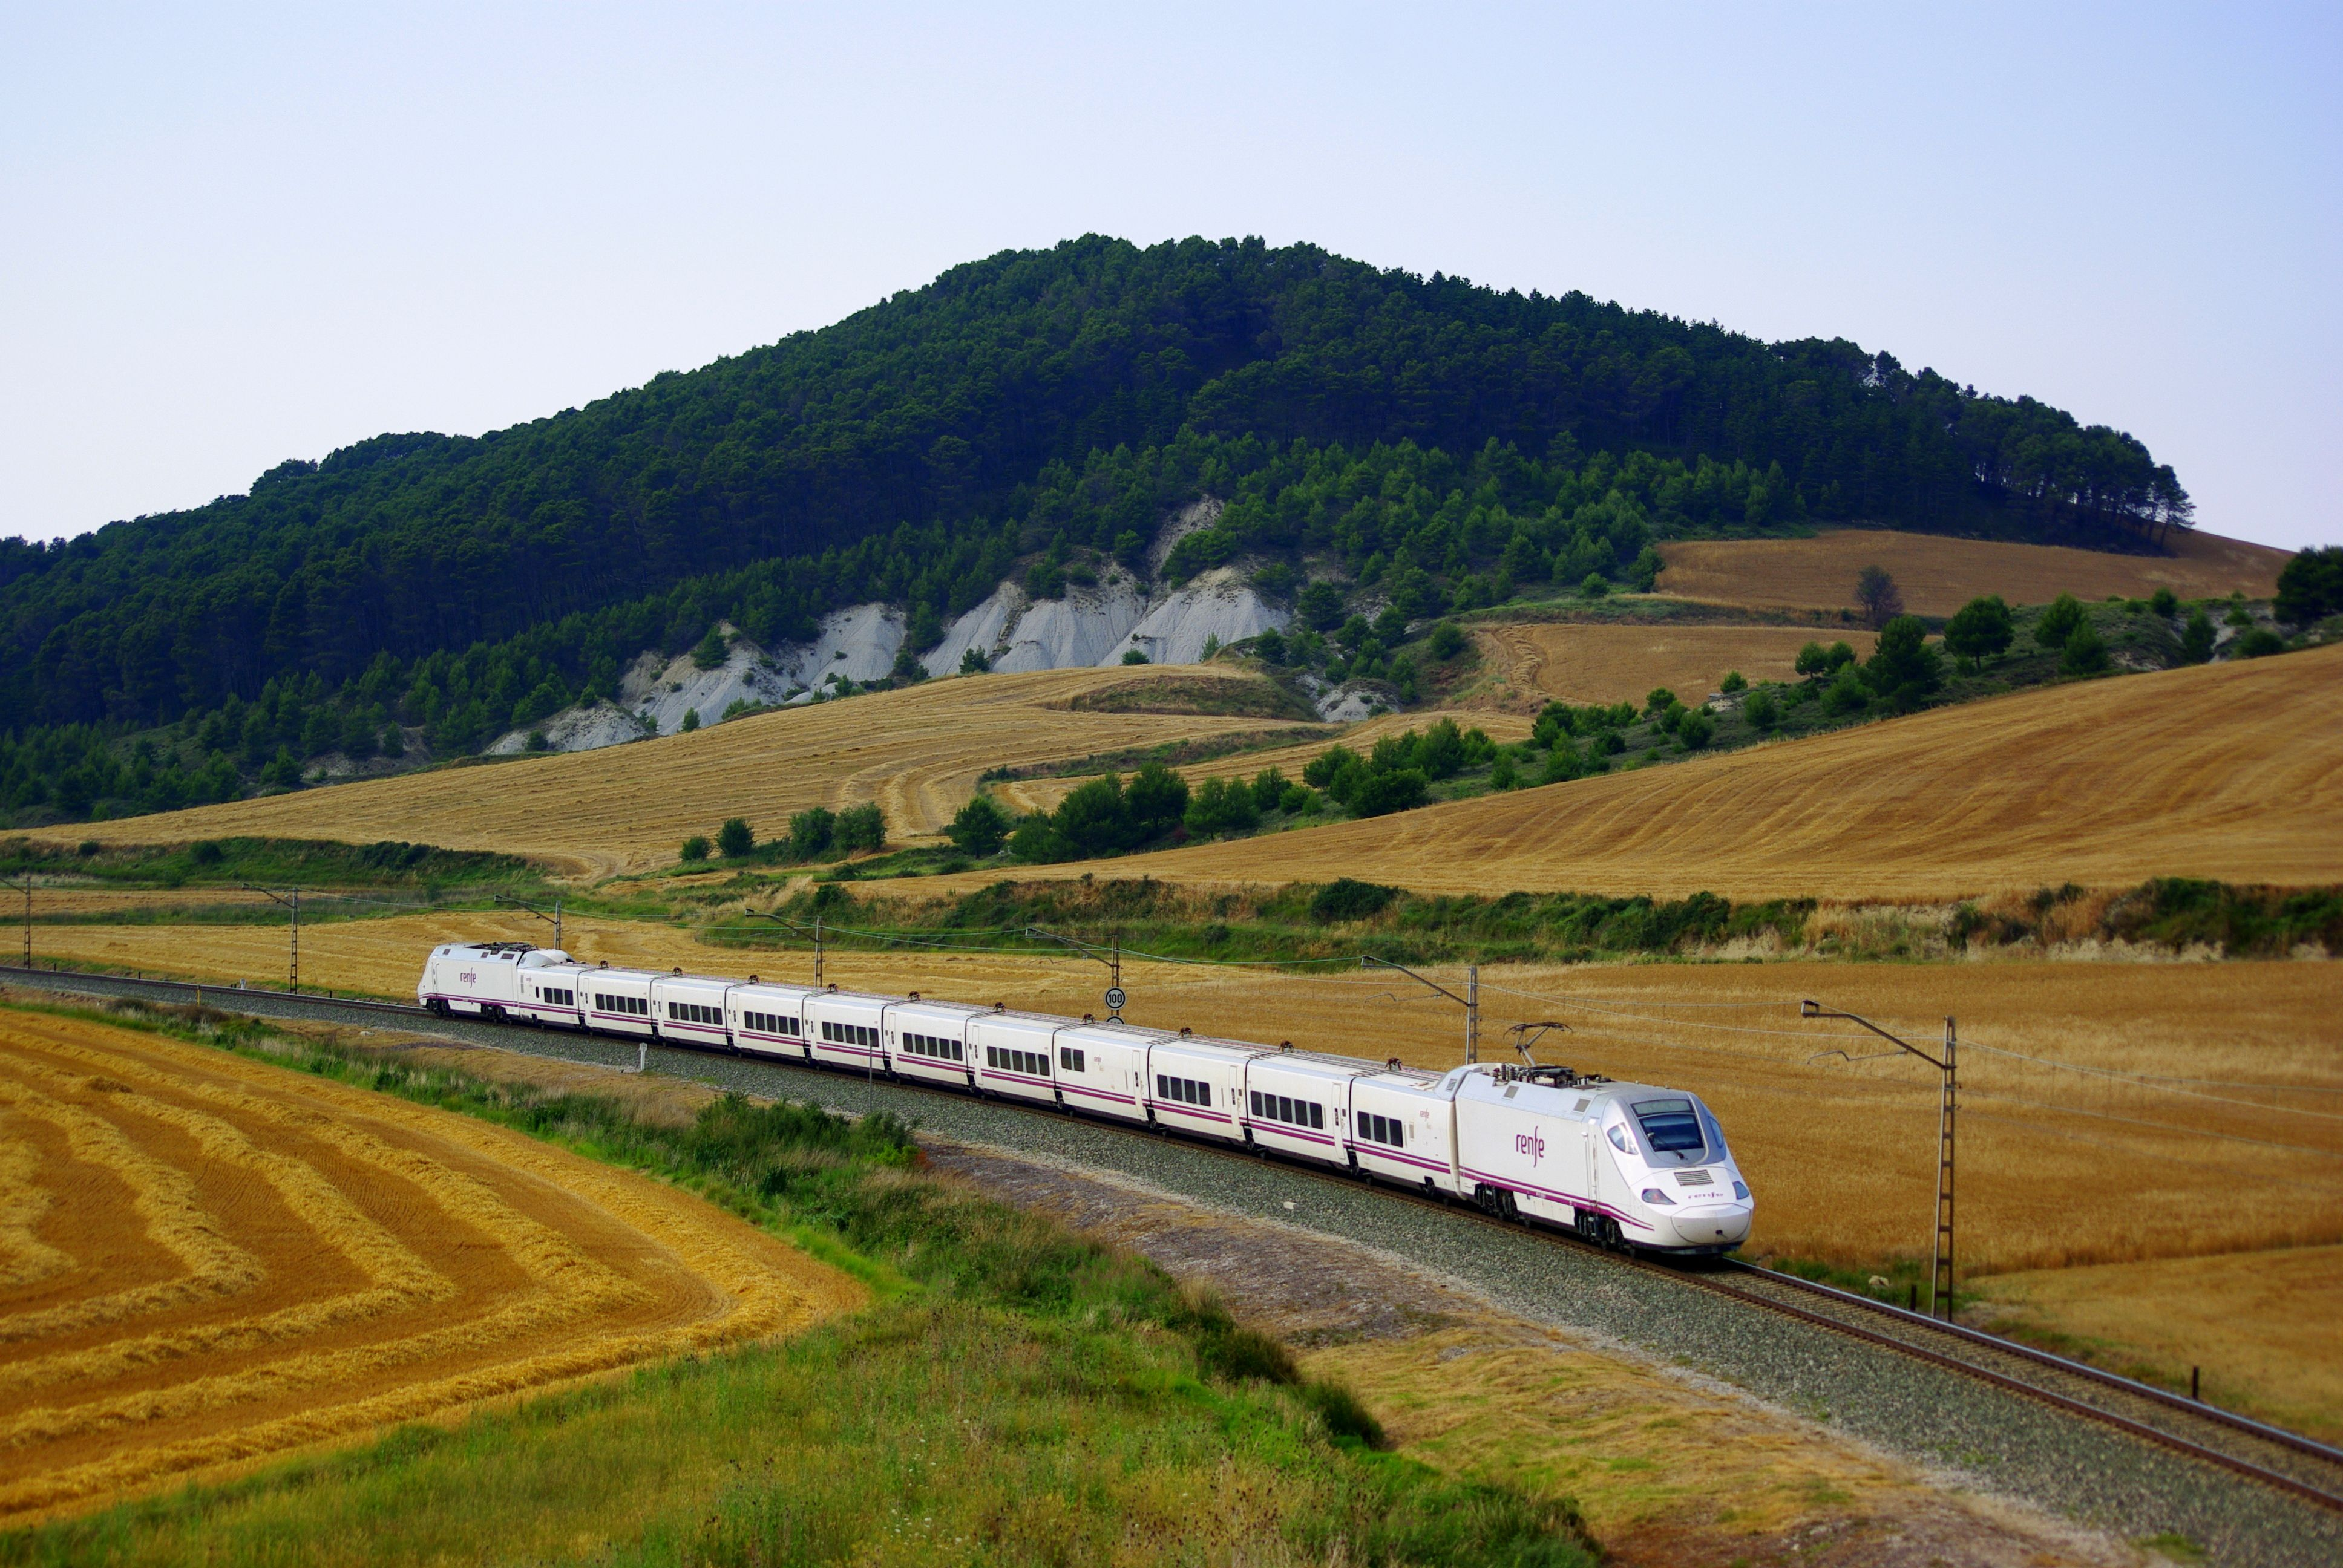 AVE high-speed train in Spain